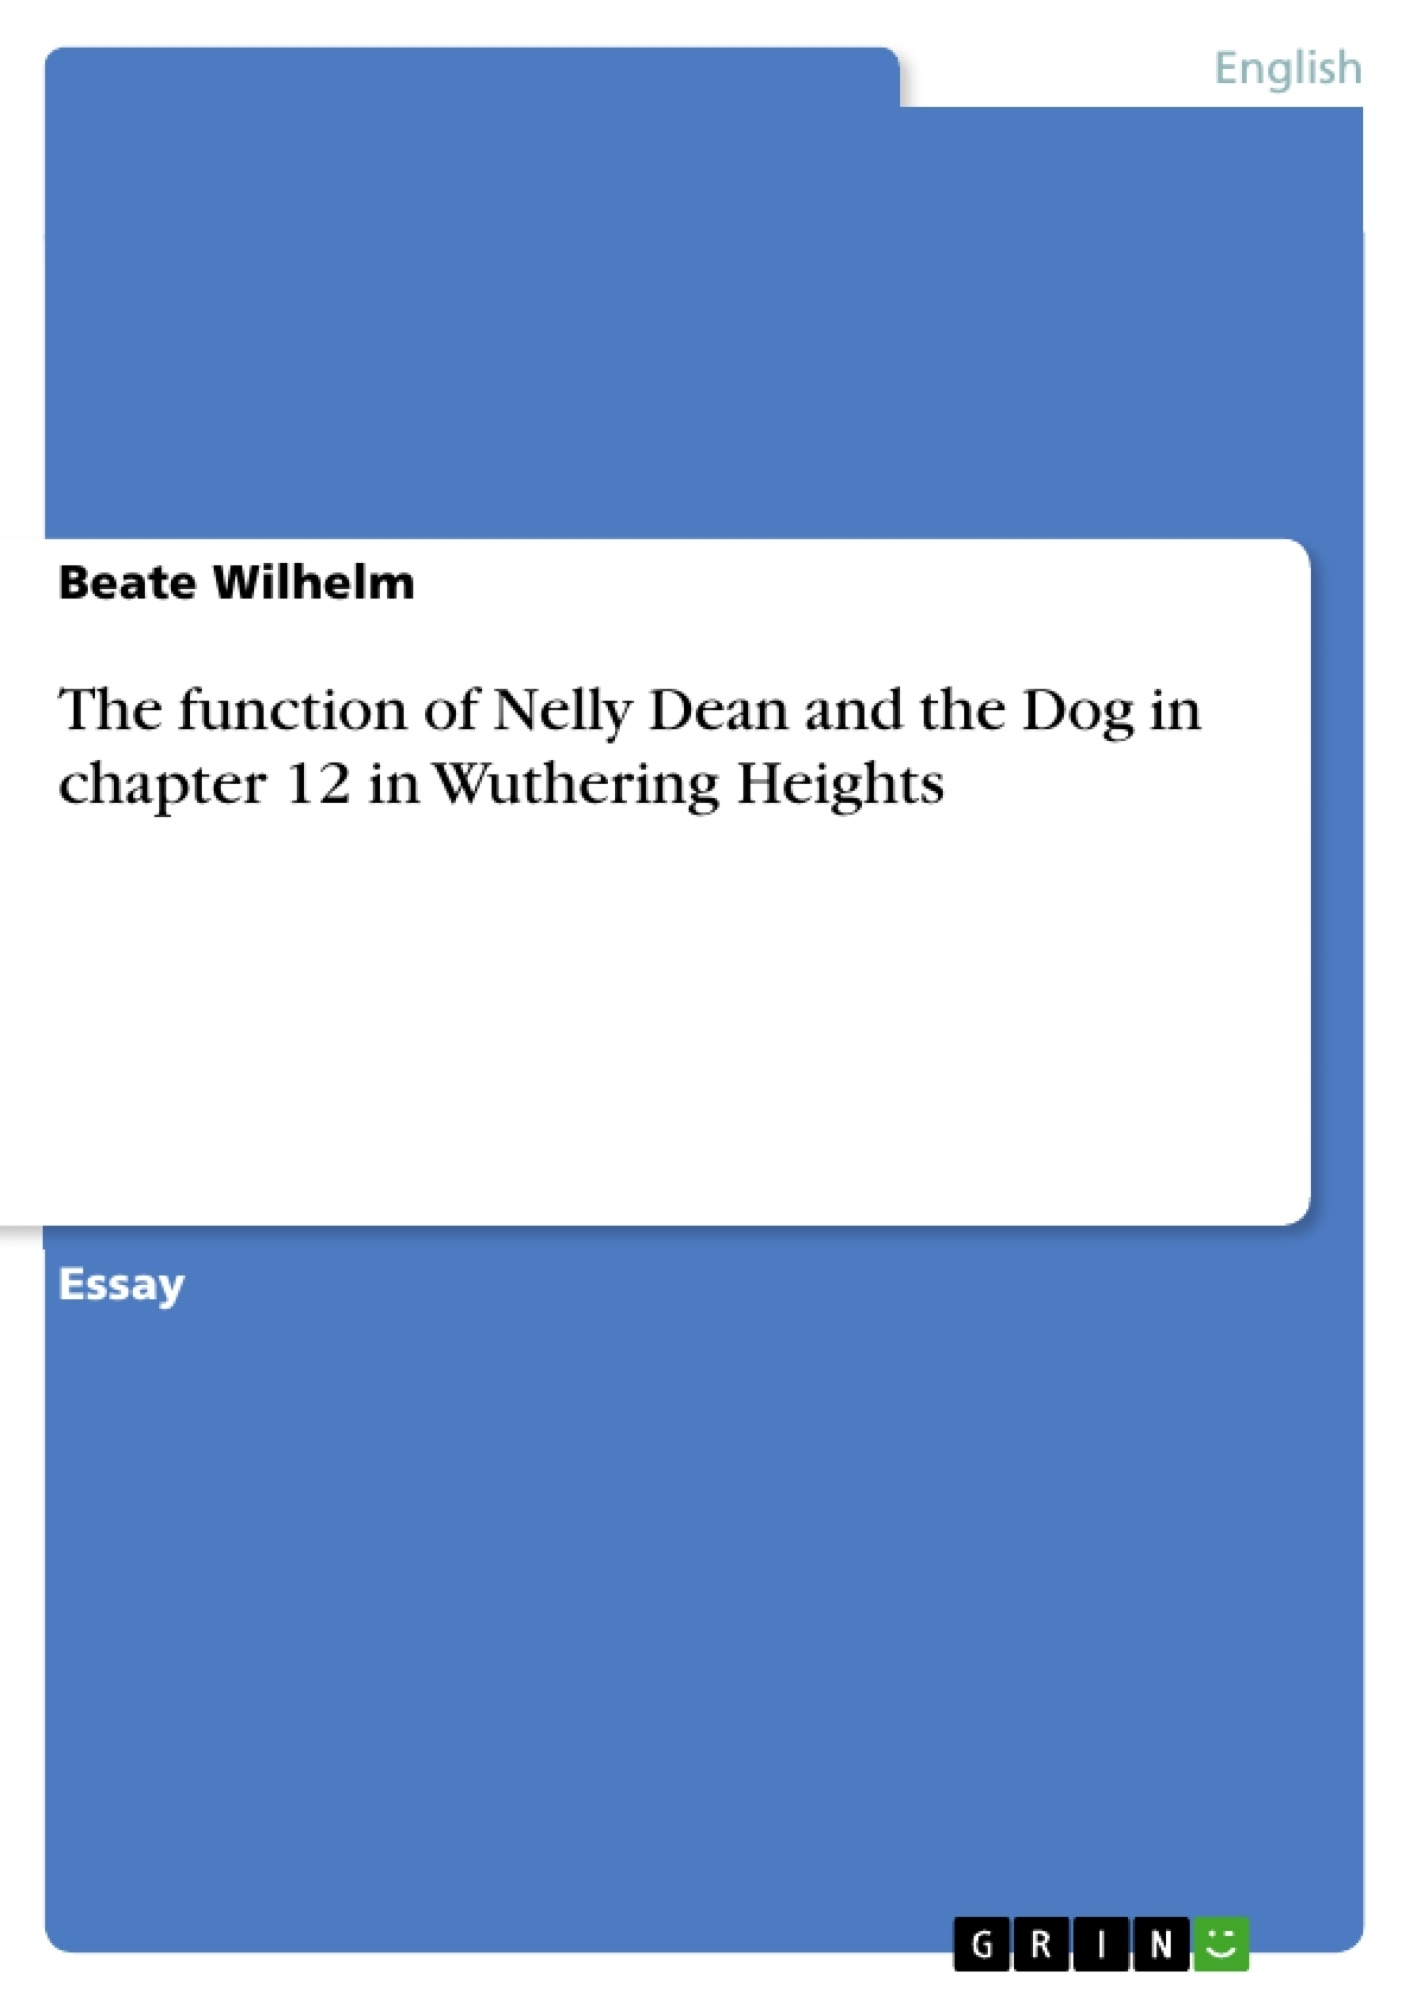 The Function Of Nelly Dean And The Dog In Chapter 12 In Wuthering